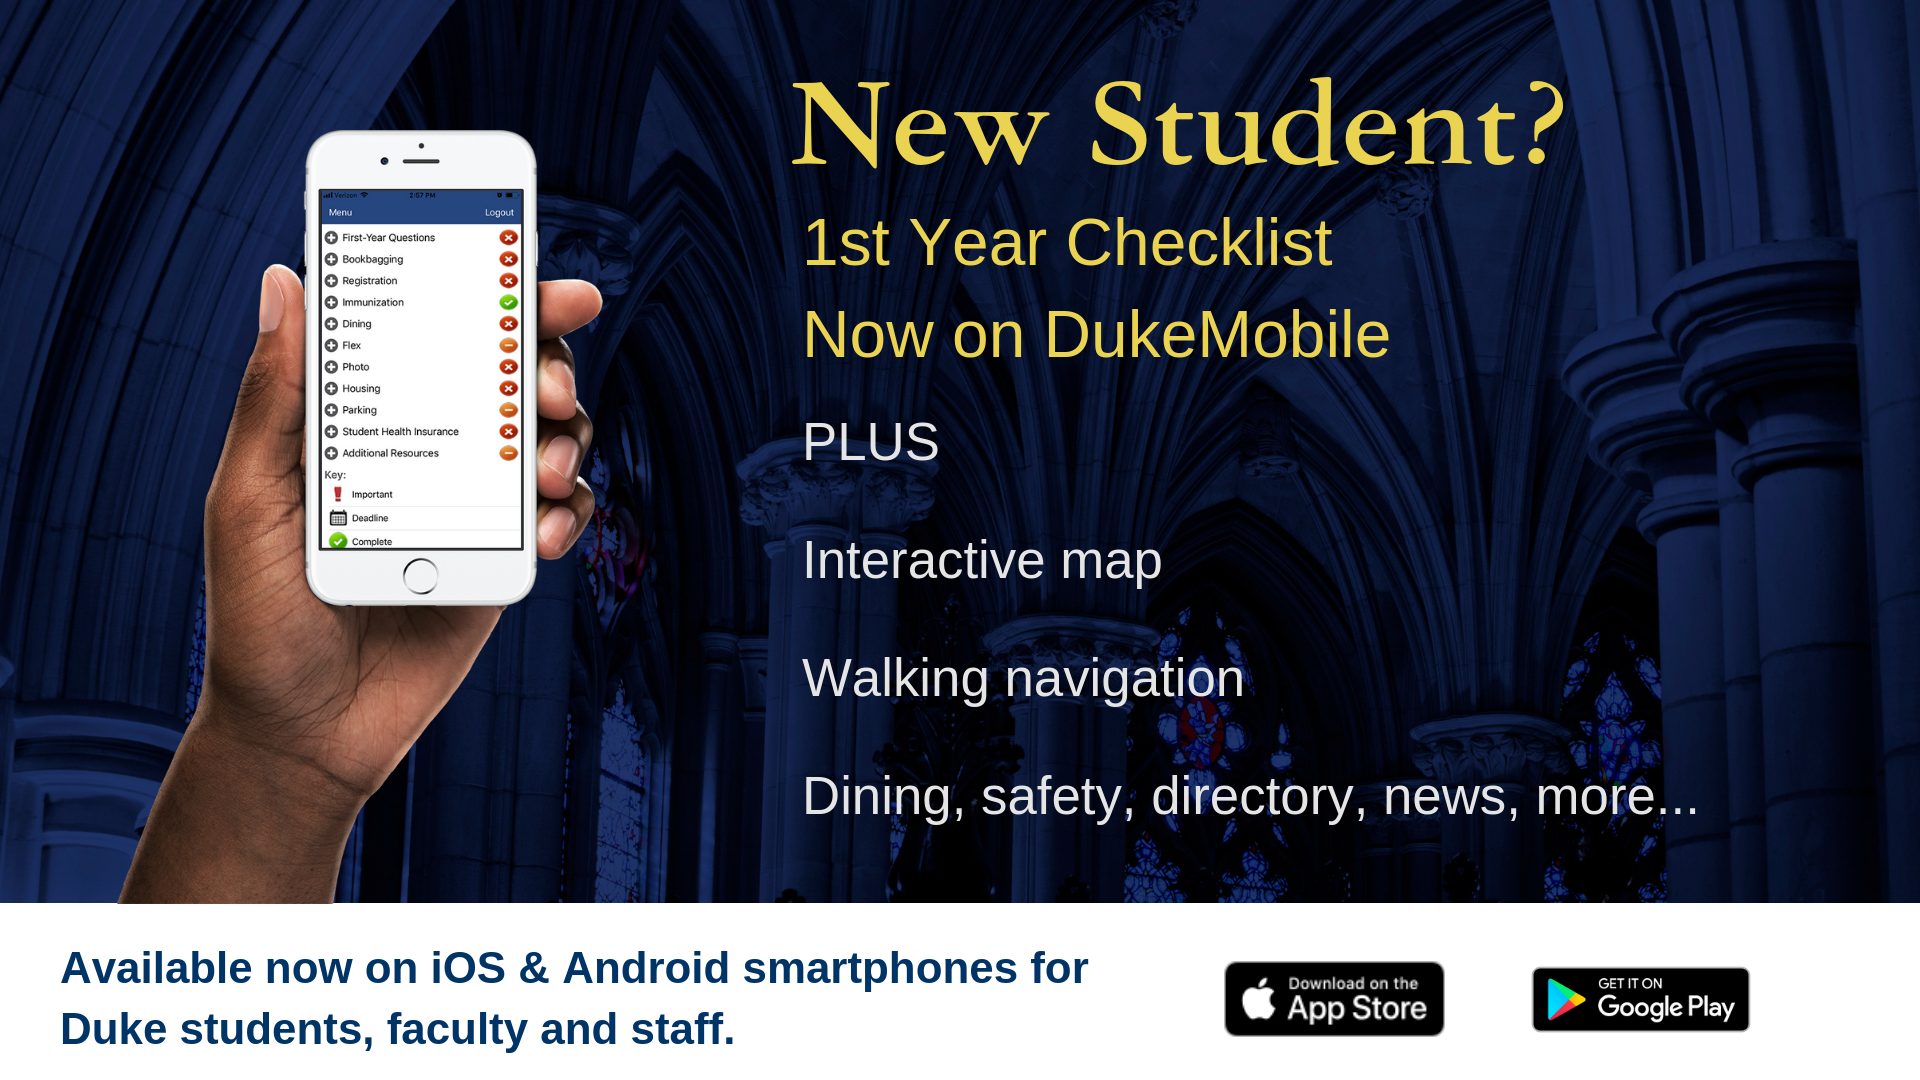 DukeMobile 7.1 announcement